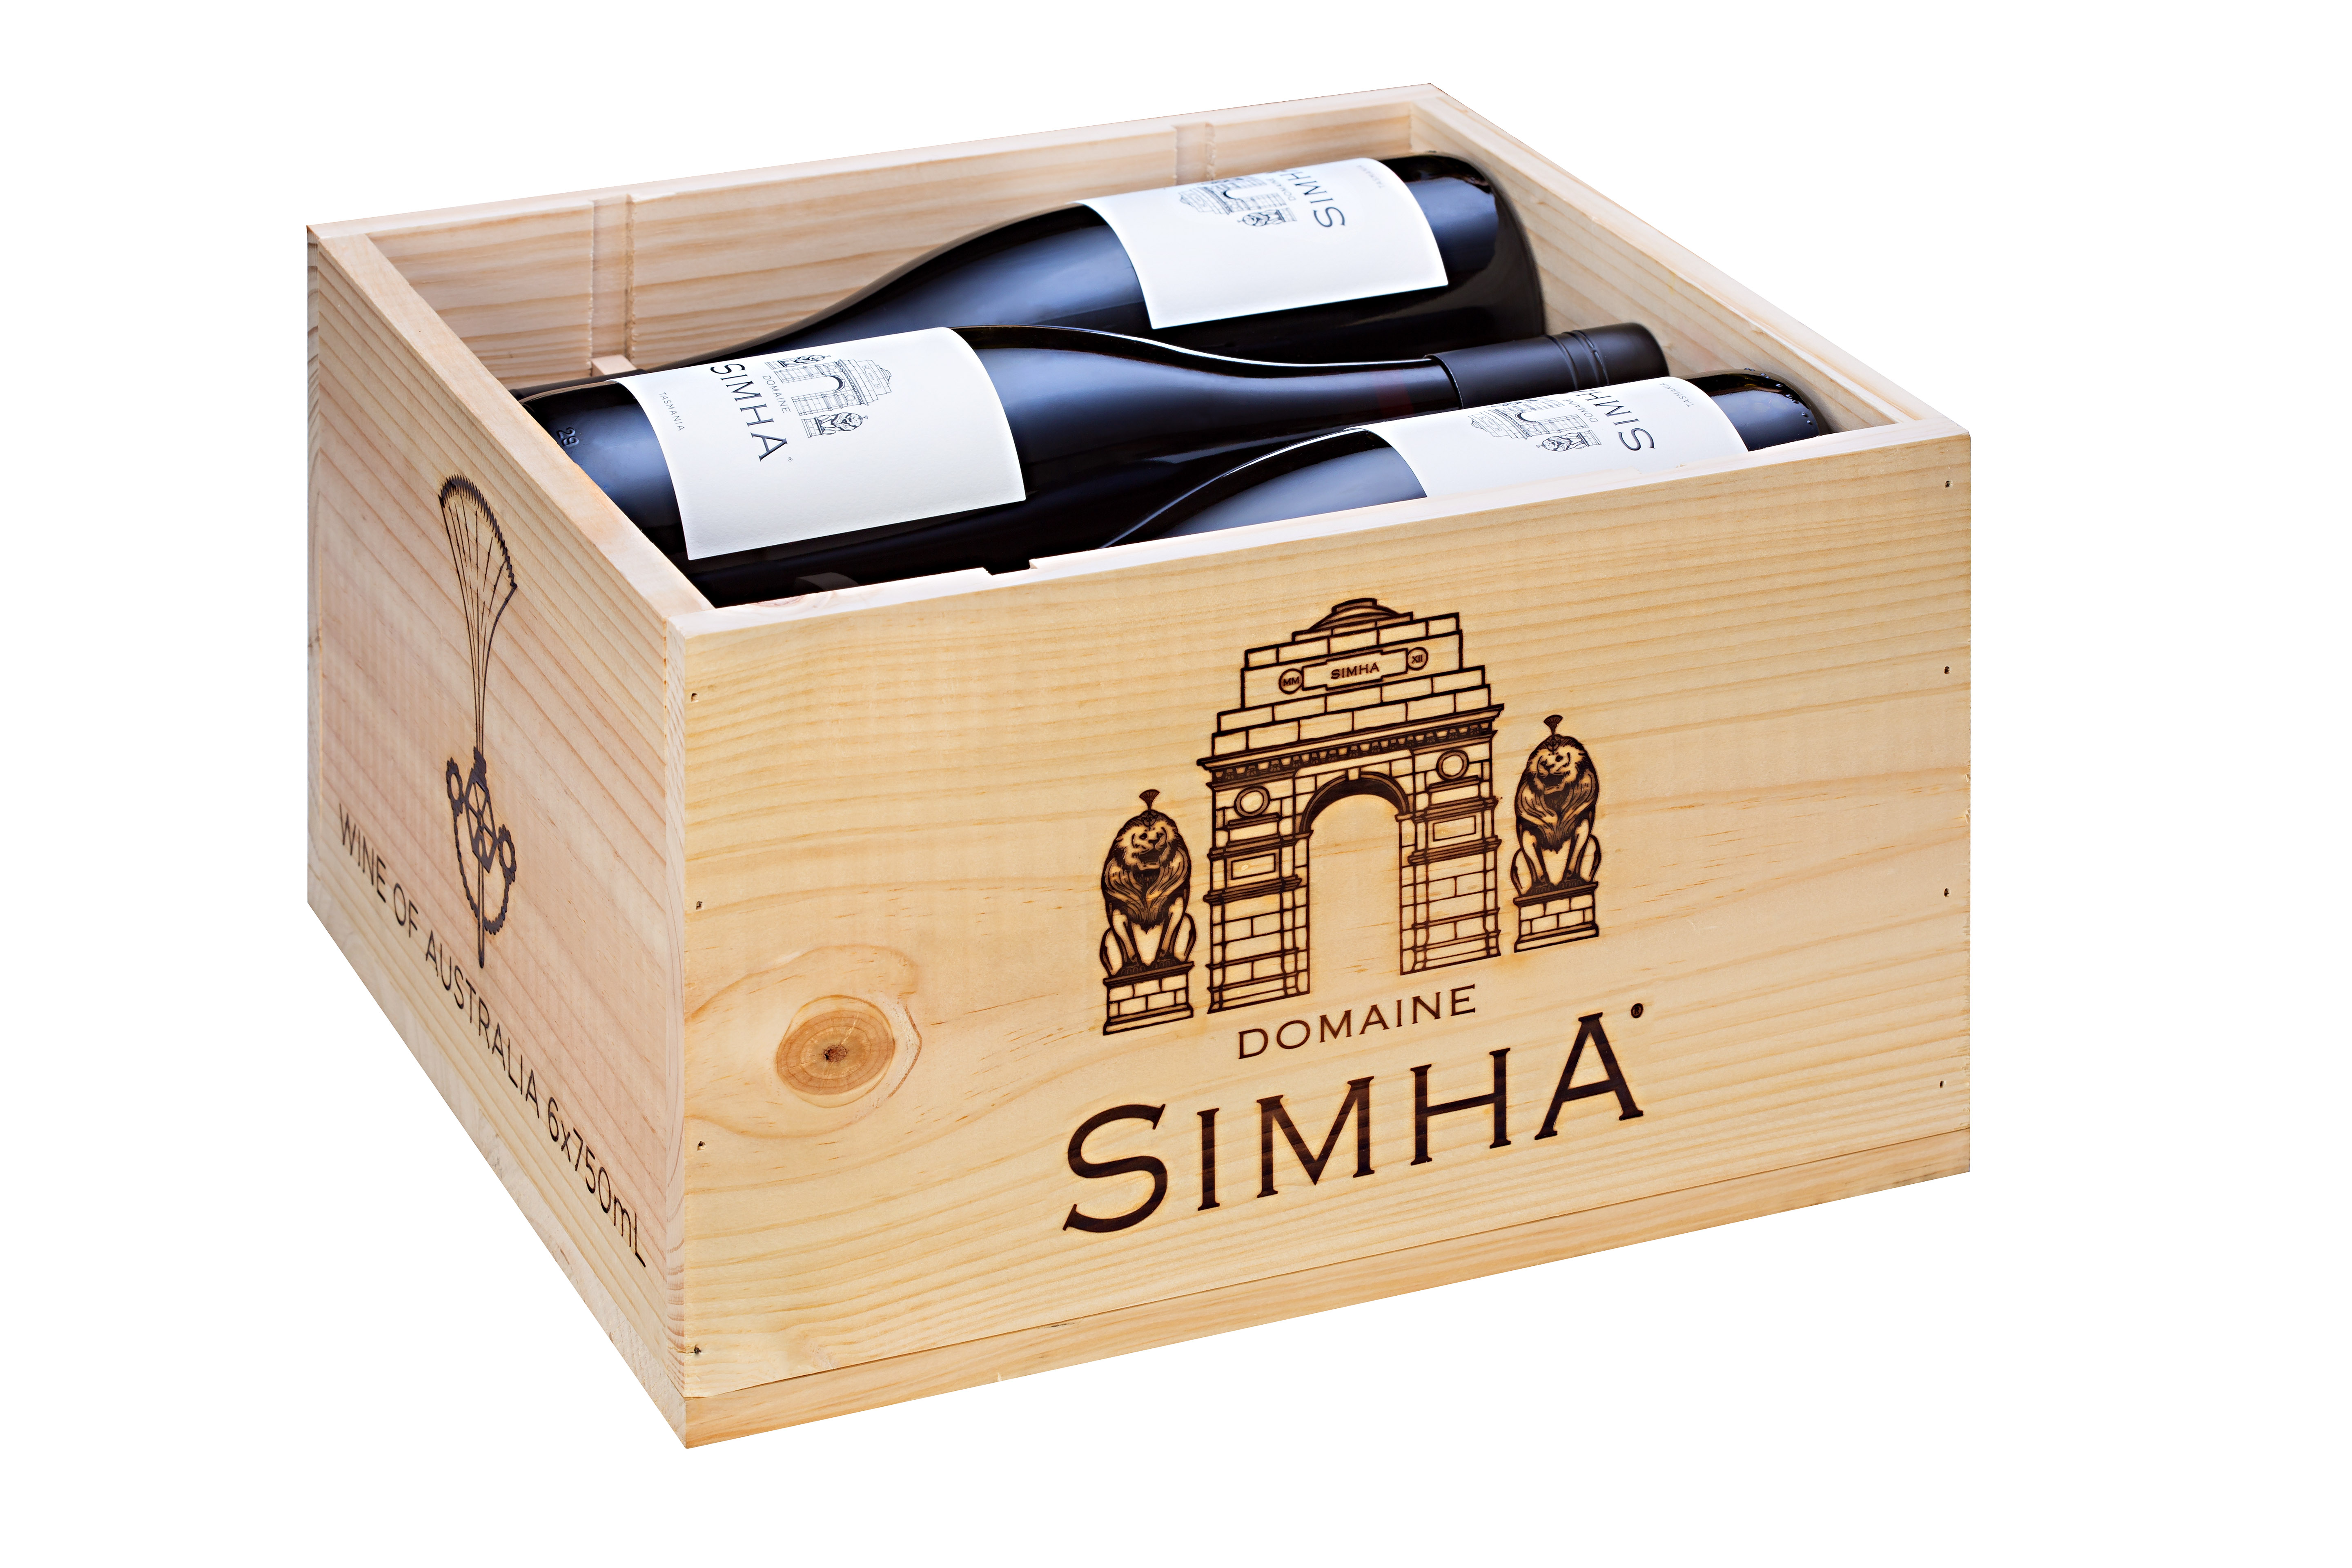 Domaine Simha Tasmania Rao Chardonnay Coal River Valley